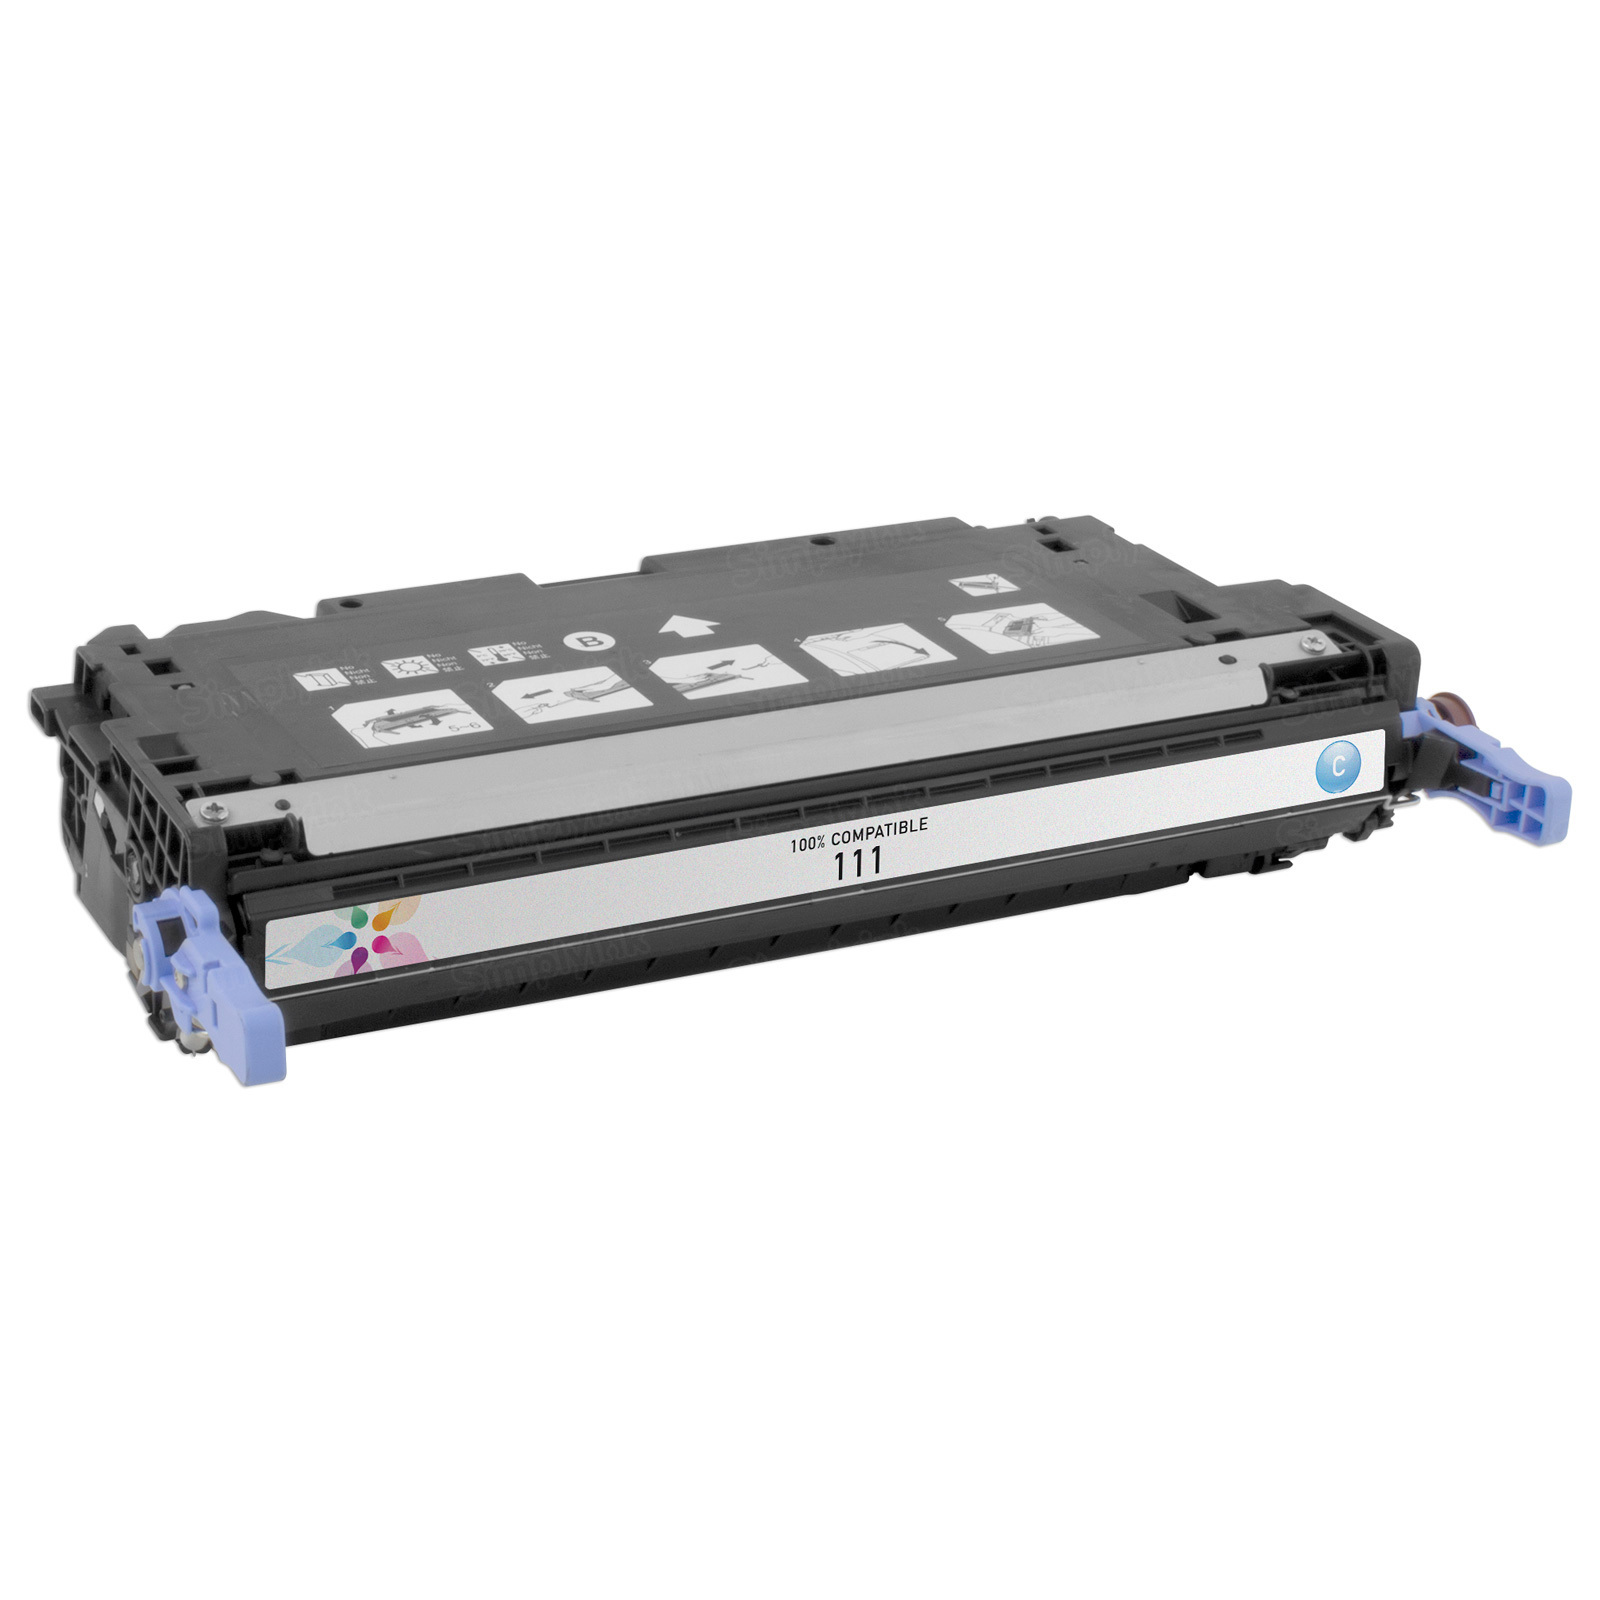 Canon 111) Cyan Toner Cartridge, Remanufactured